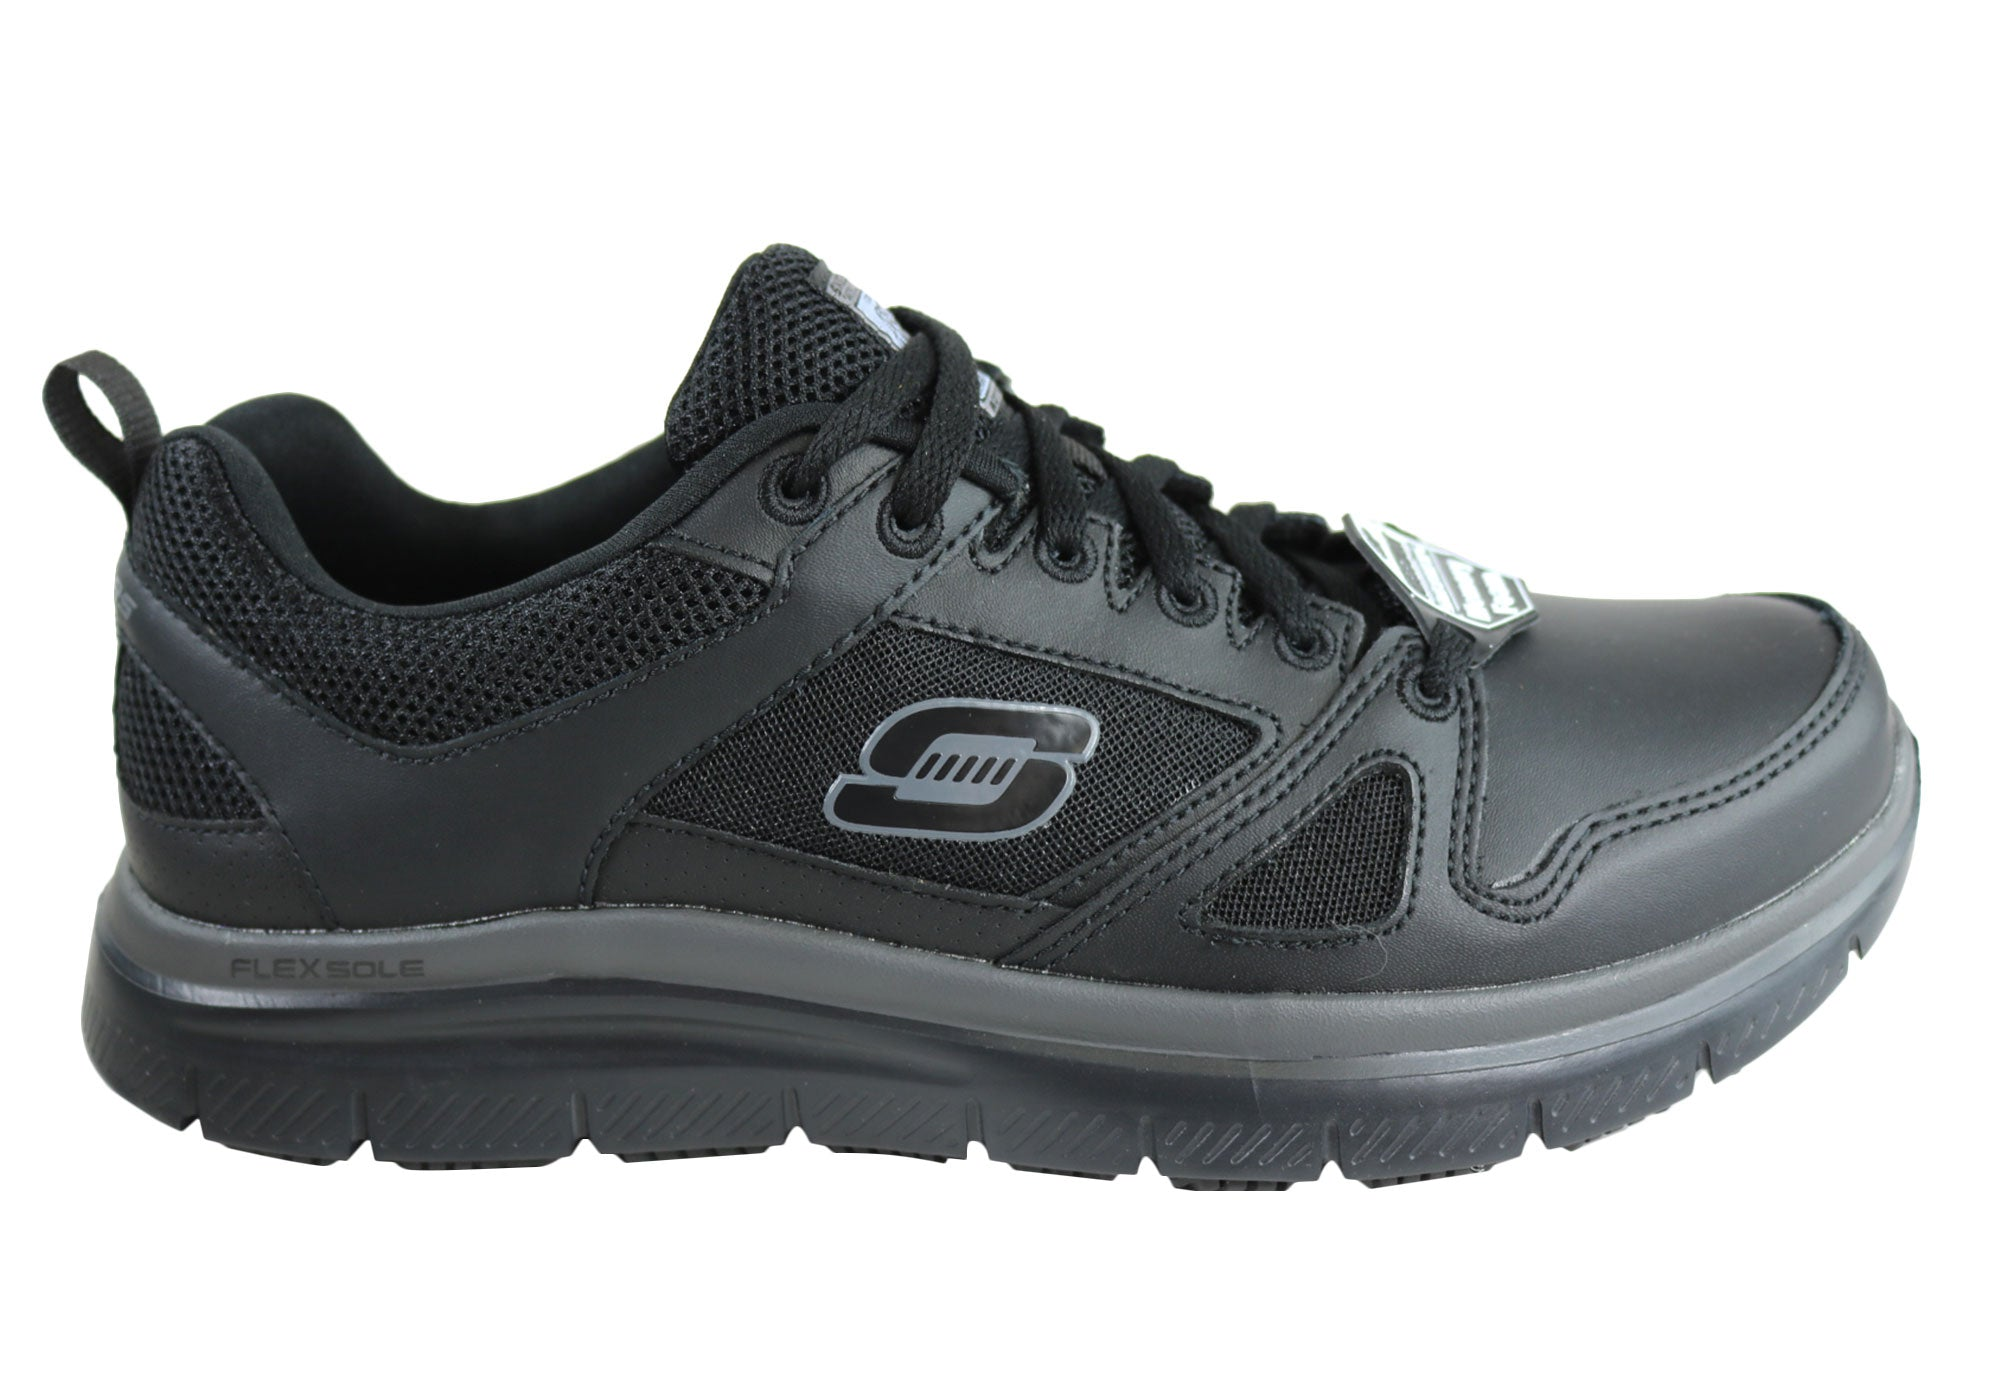 b5f4a219be1a Skechers Flex Advantage SR Mens Leather Slip Resistant Sole Work ...